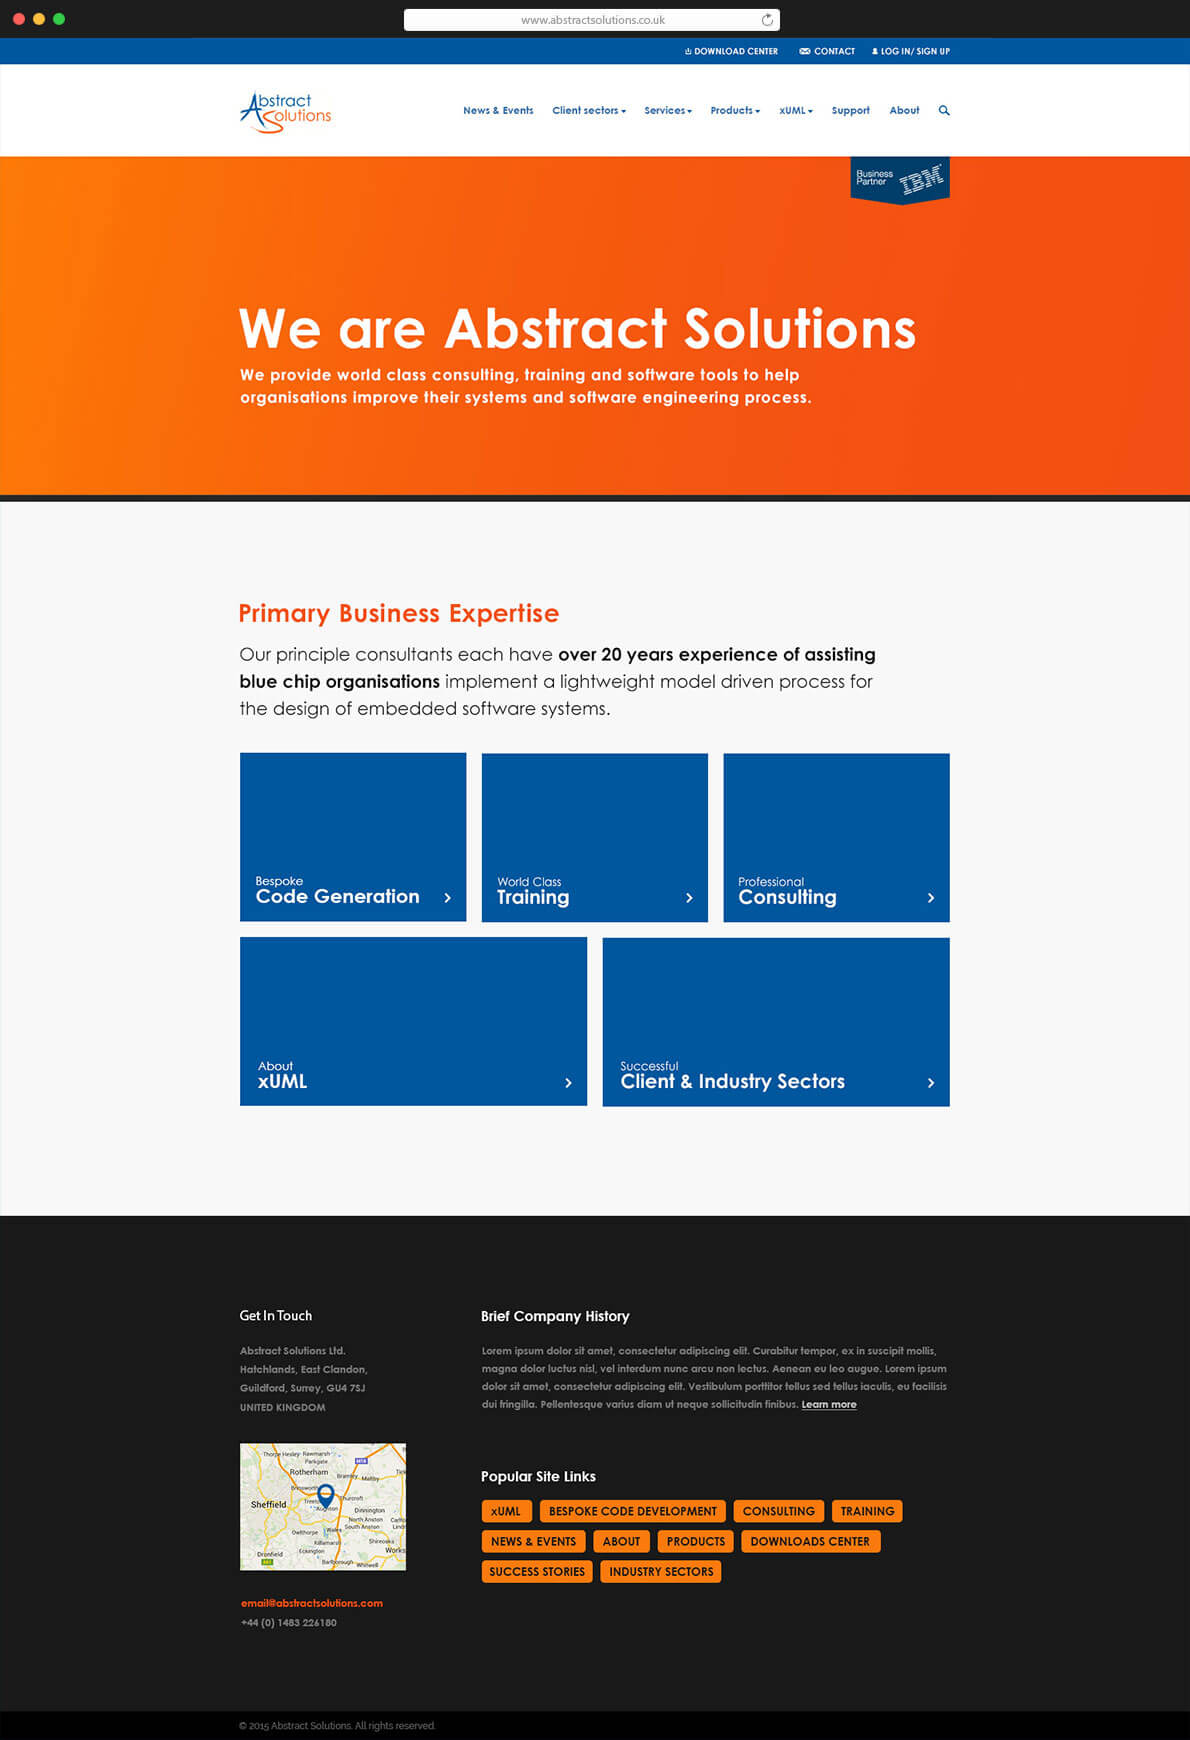 Abstract Solutions homepage design